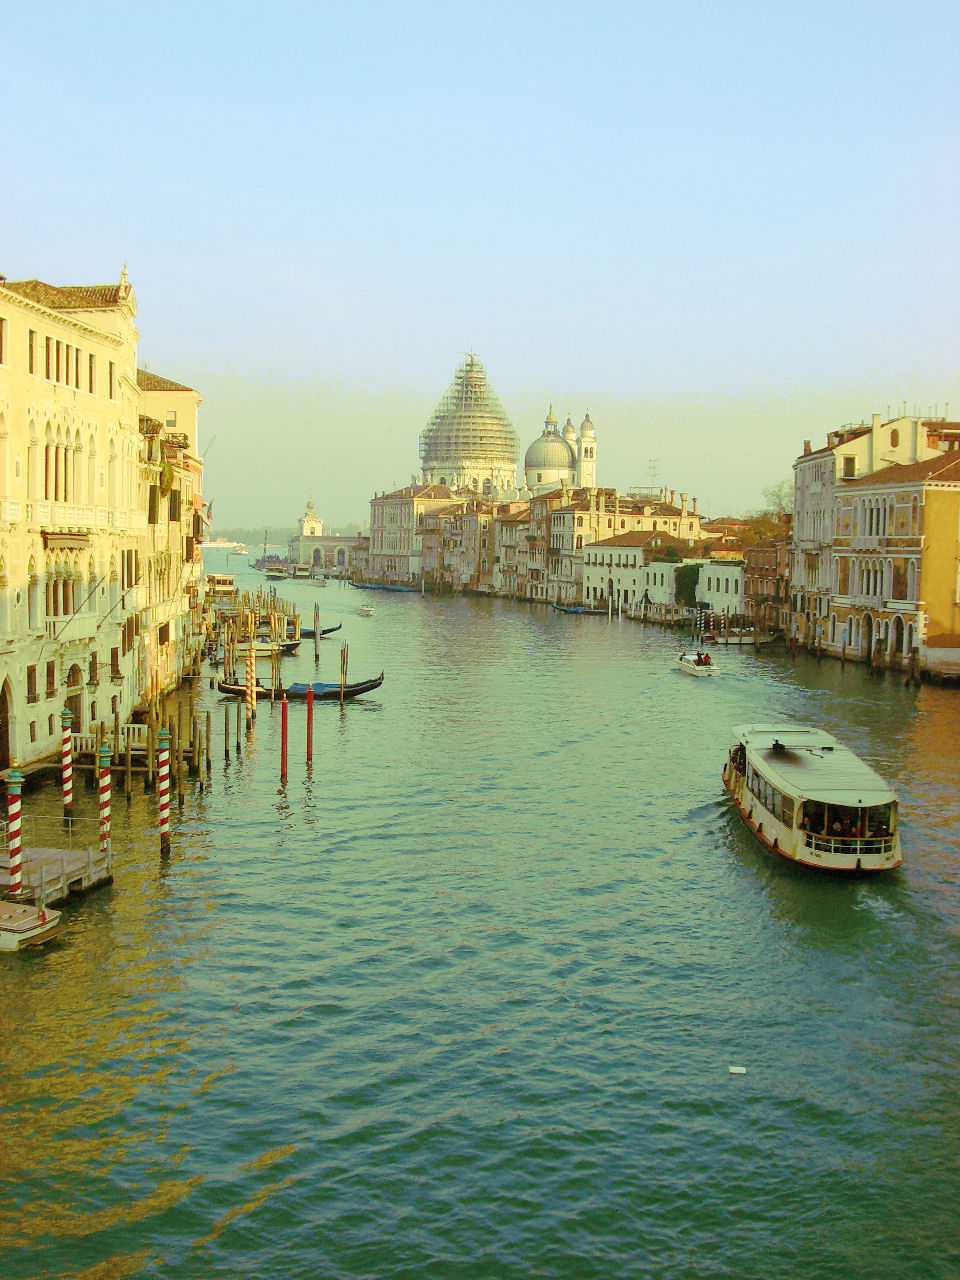 Hd Wallpapers For Pc 1080p Free Download Pack Venice Wallpapers High Quality Download Free